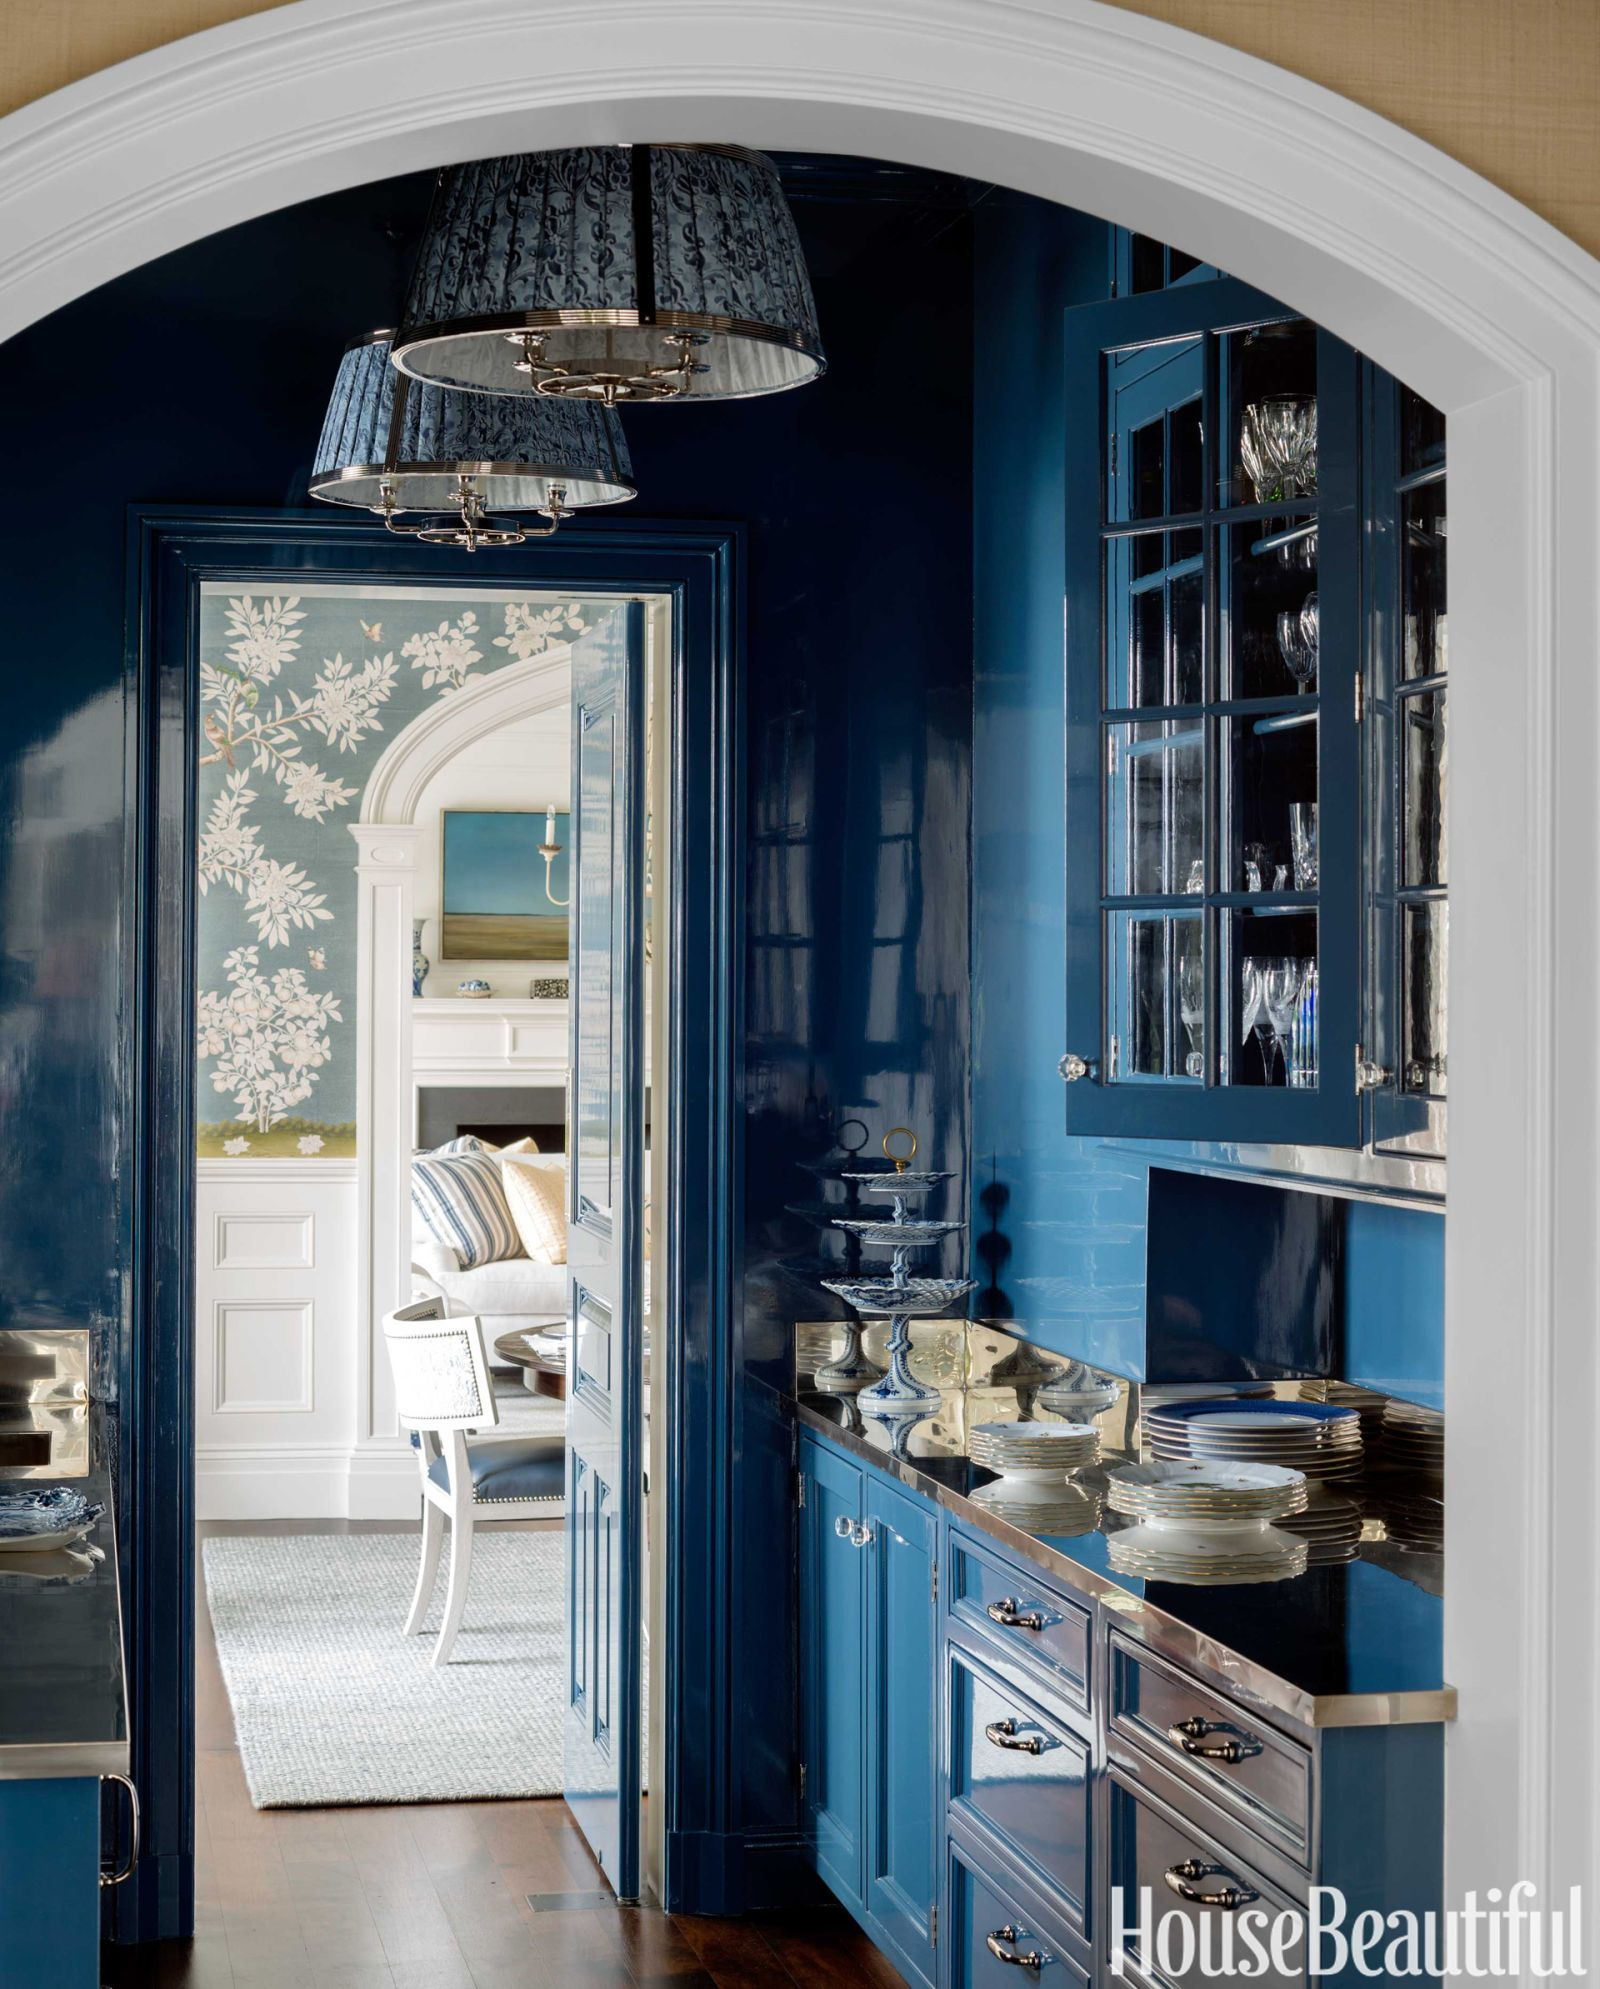 Lee Ann Thornton on the Timeless Appeal of Blue and White